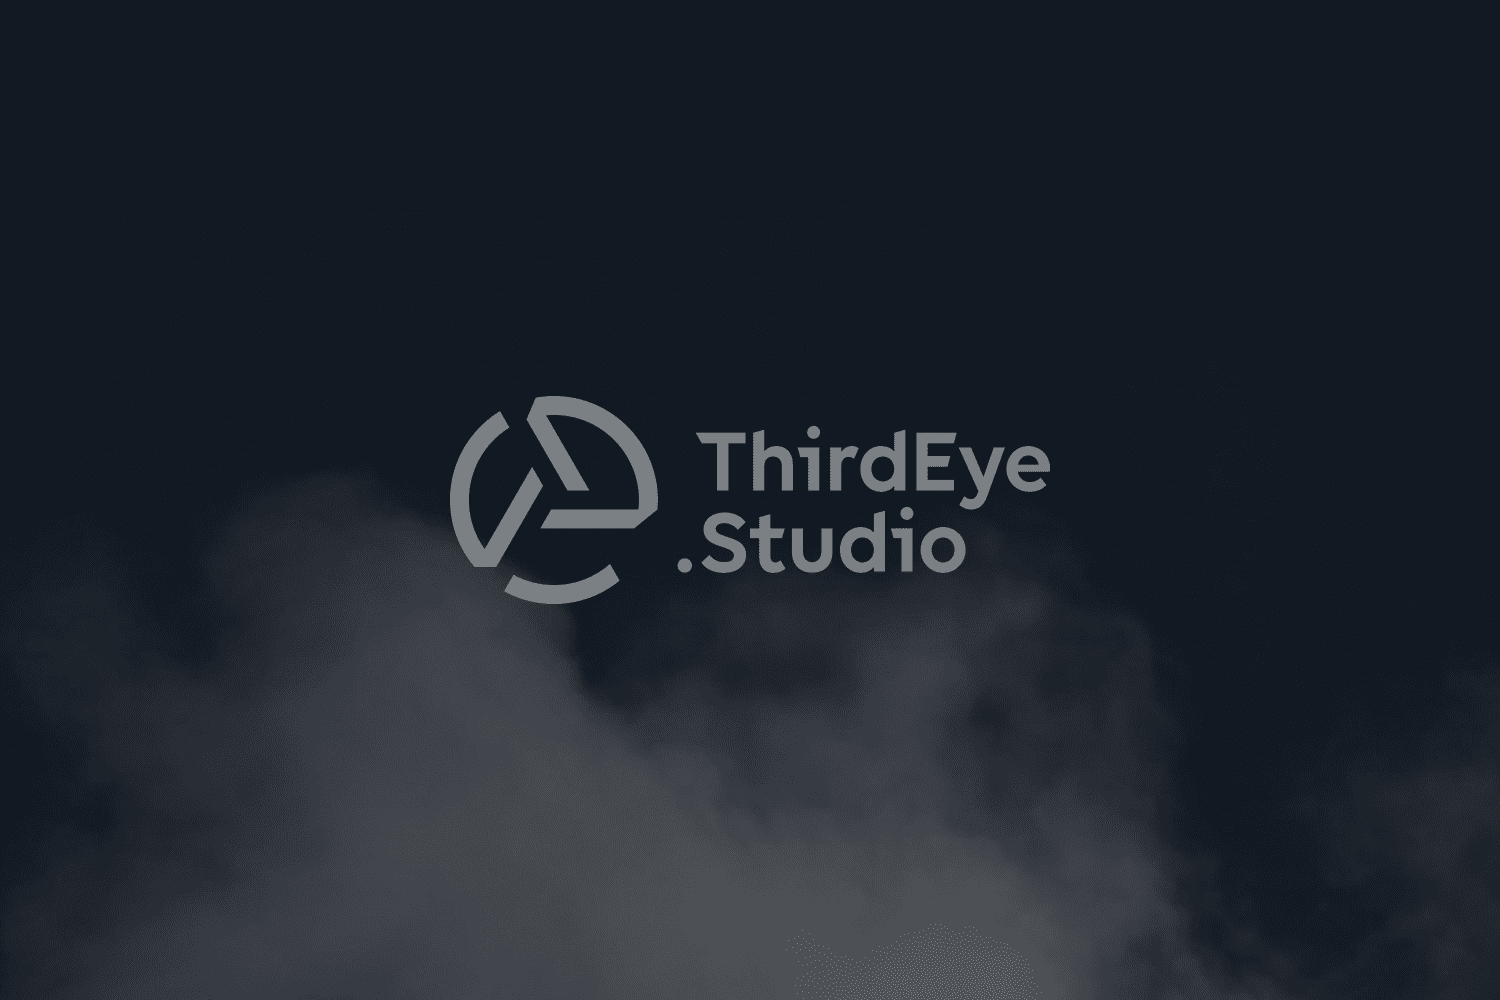 Third Eye Studio